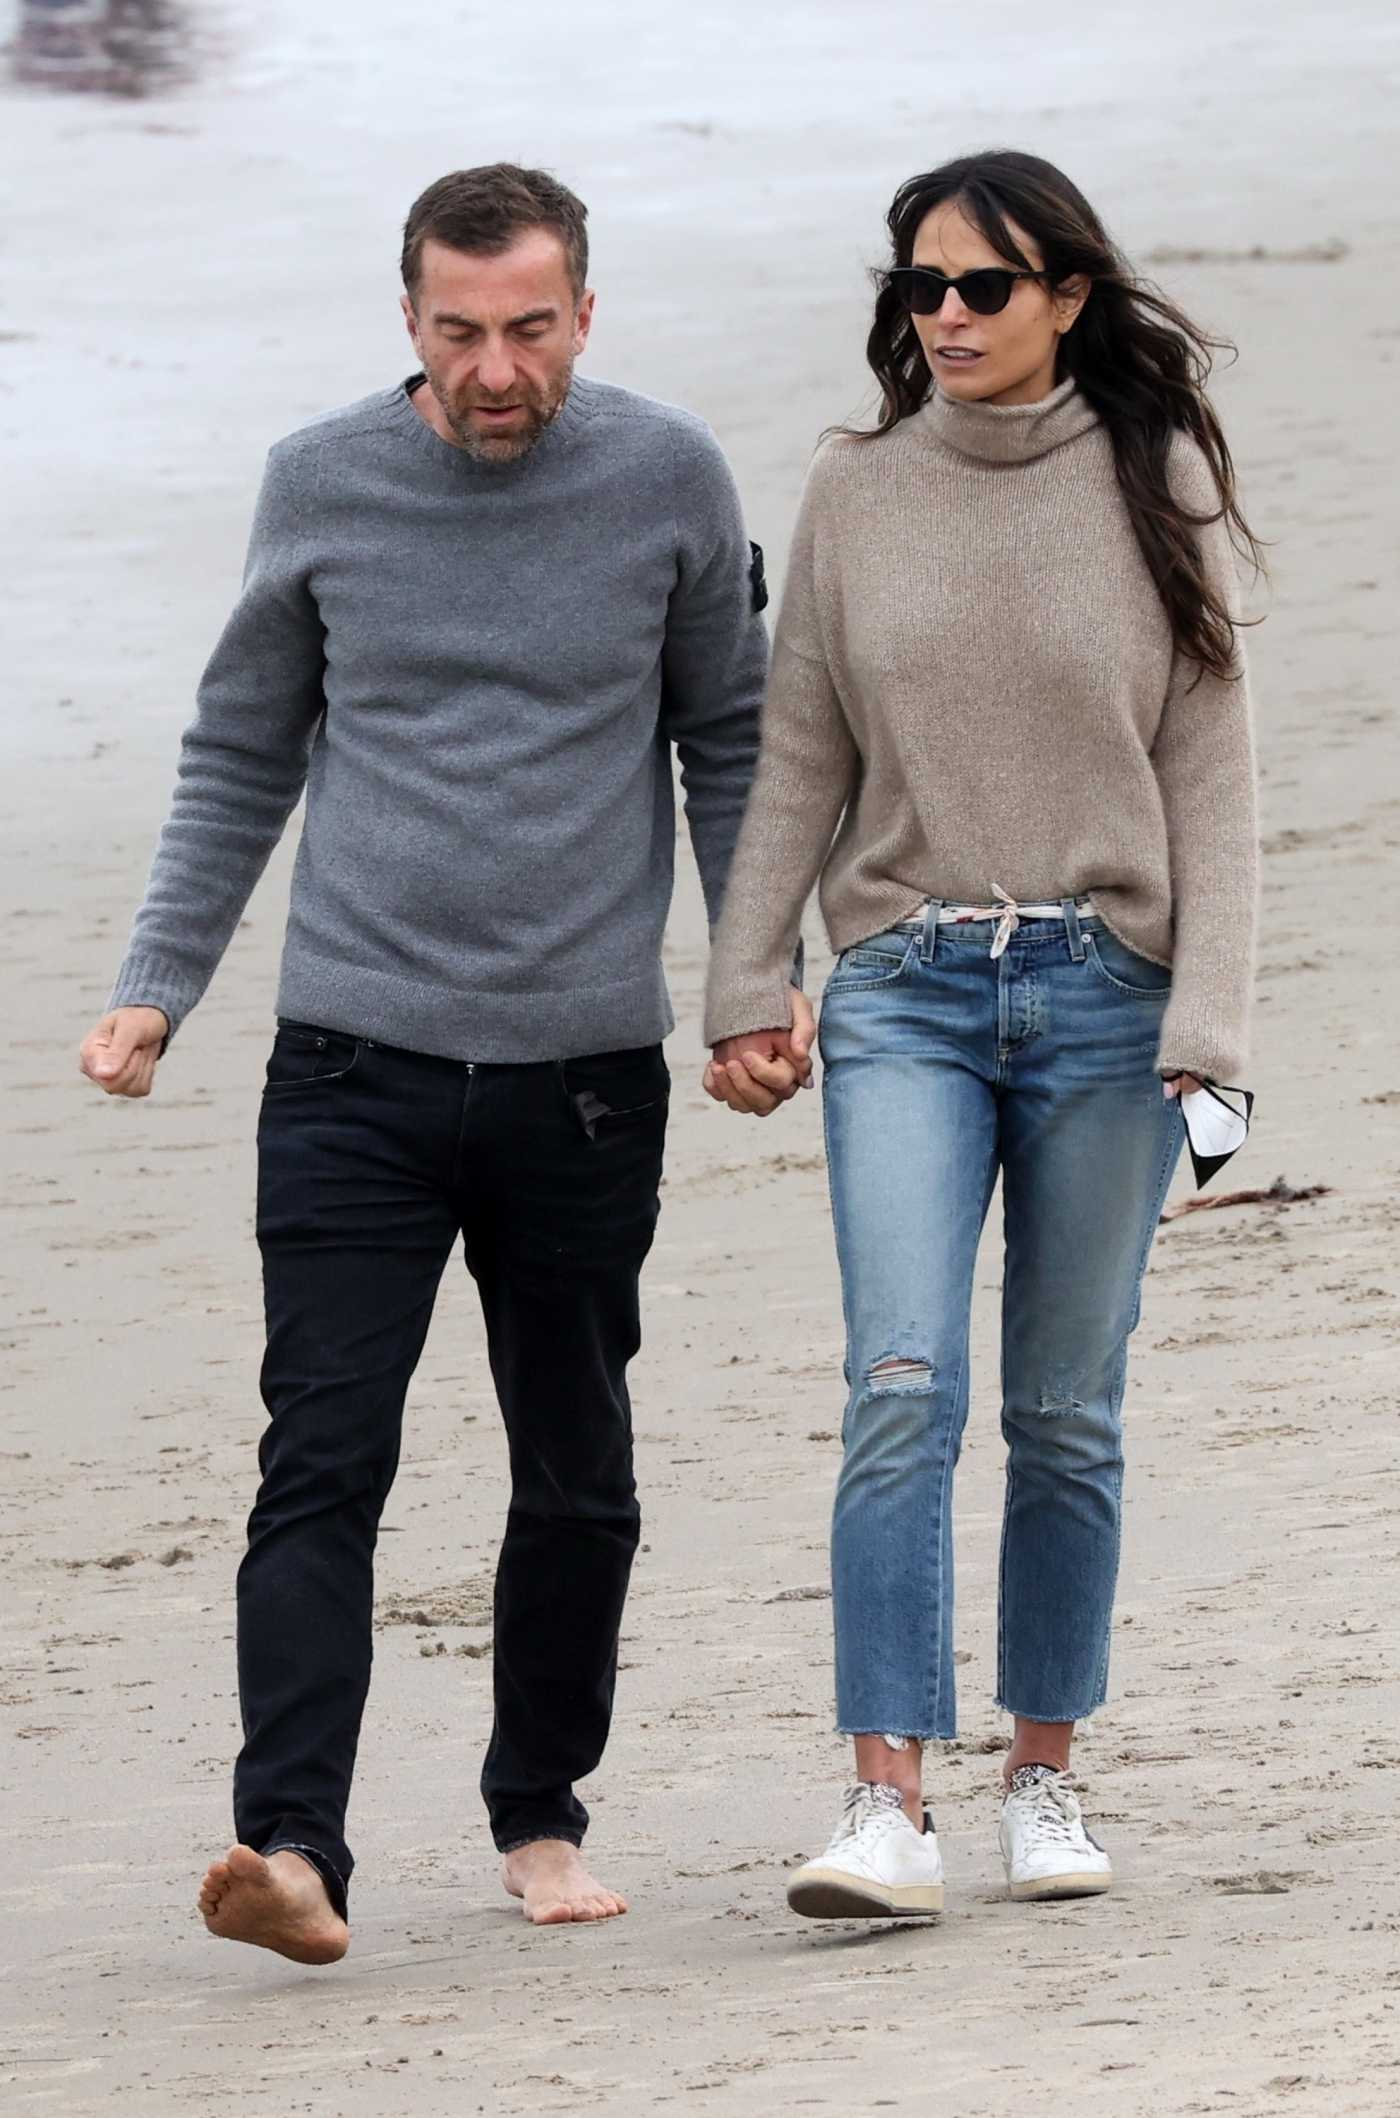 Jordana Brewster in a White Sneakers Was Seen on the Beach with Her Boyfriend in Santa Monica 03/09/2021